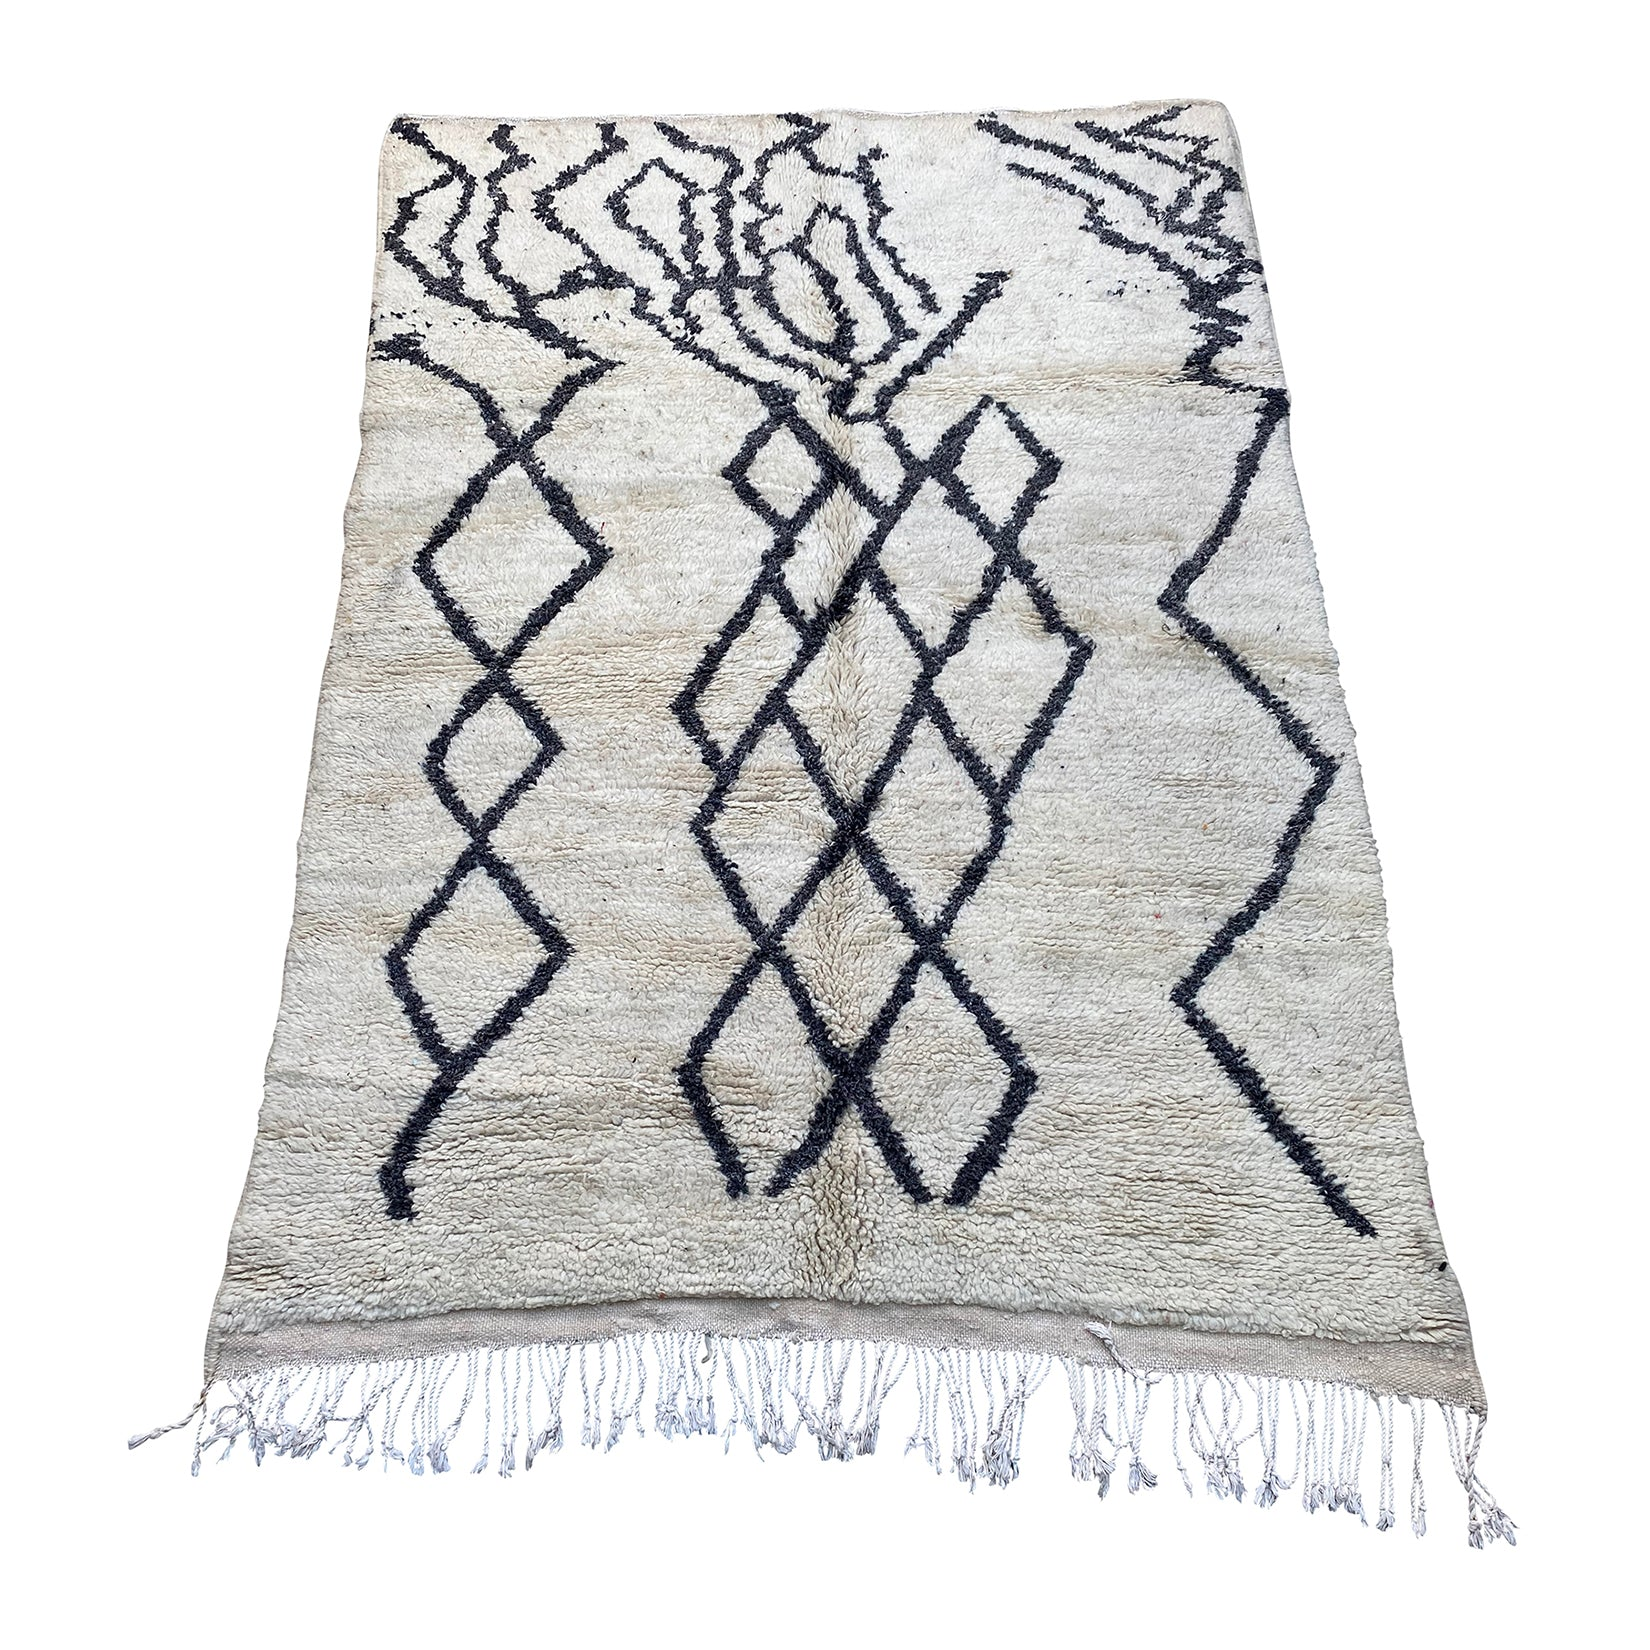 Abstract black and white Moroccan rug - Kantara | Moroccan Rugs